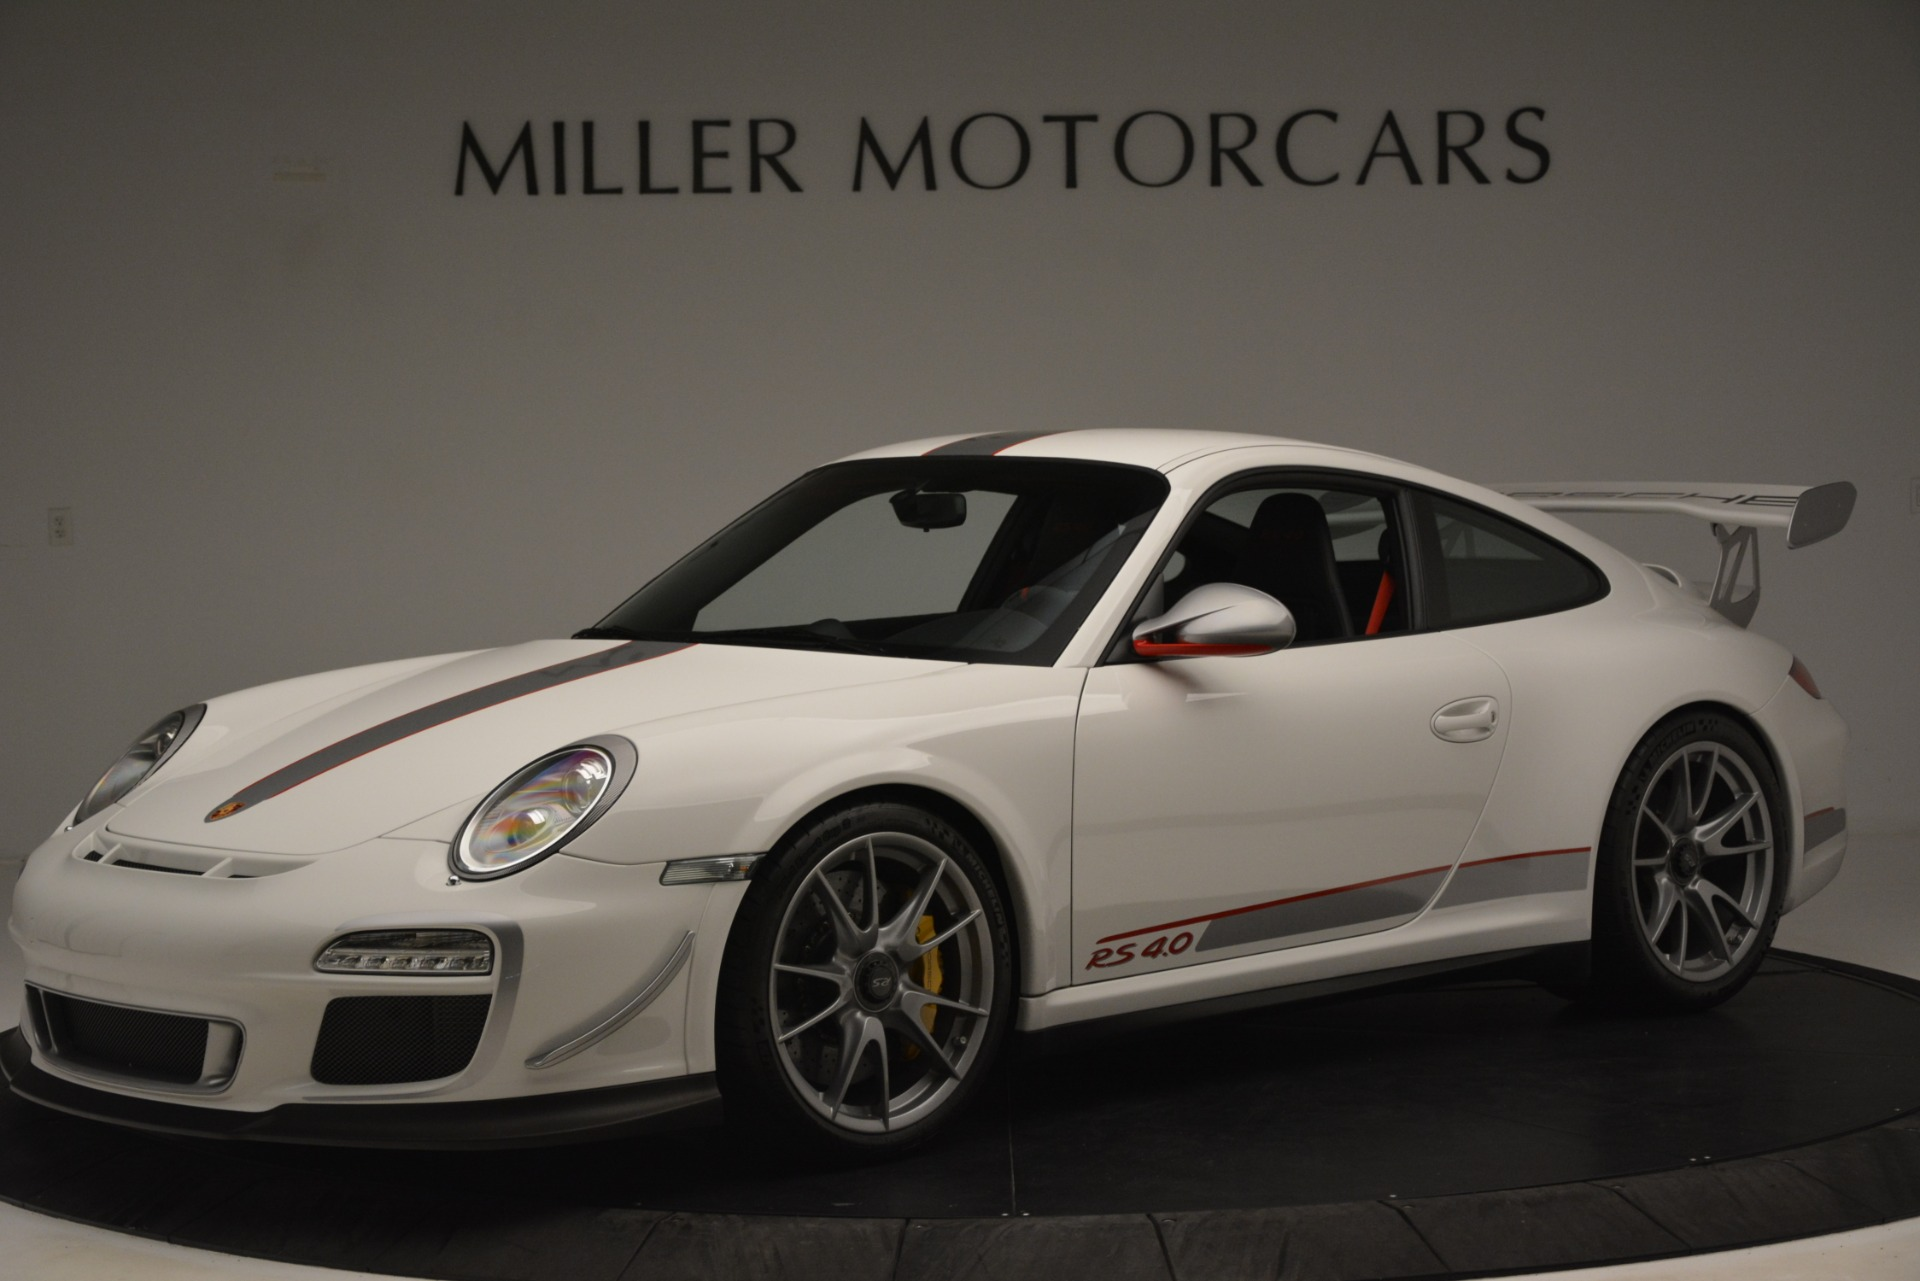 Used 2011 Porsche 911 GT3 RS 4.0 For Sale In Westport, CT 3188_p2